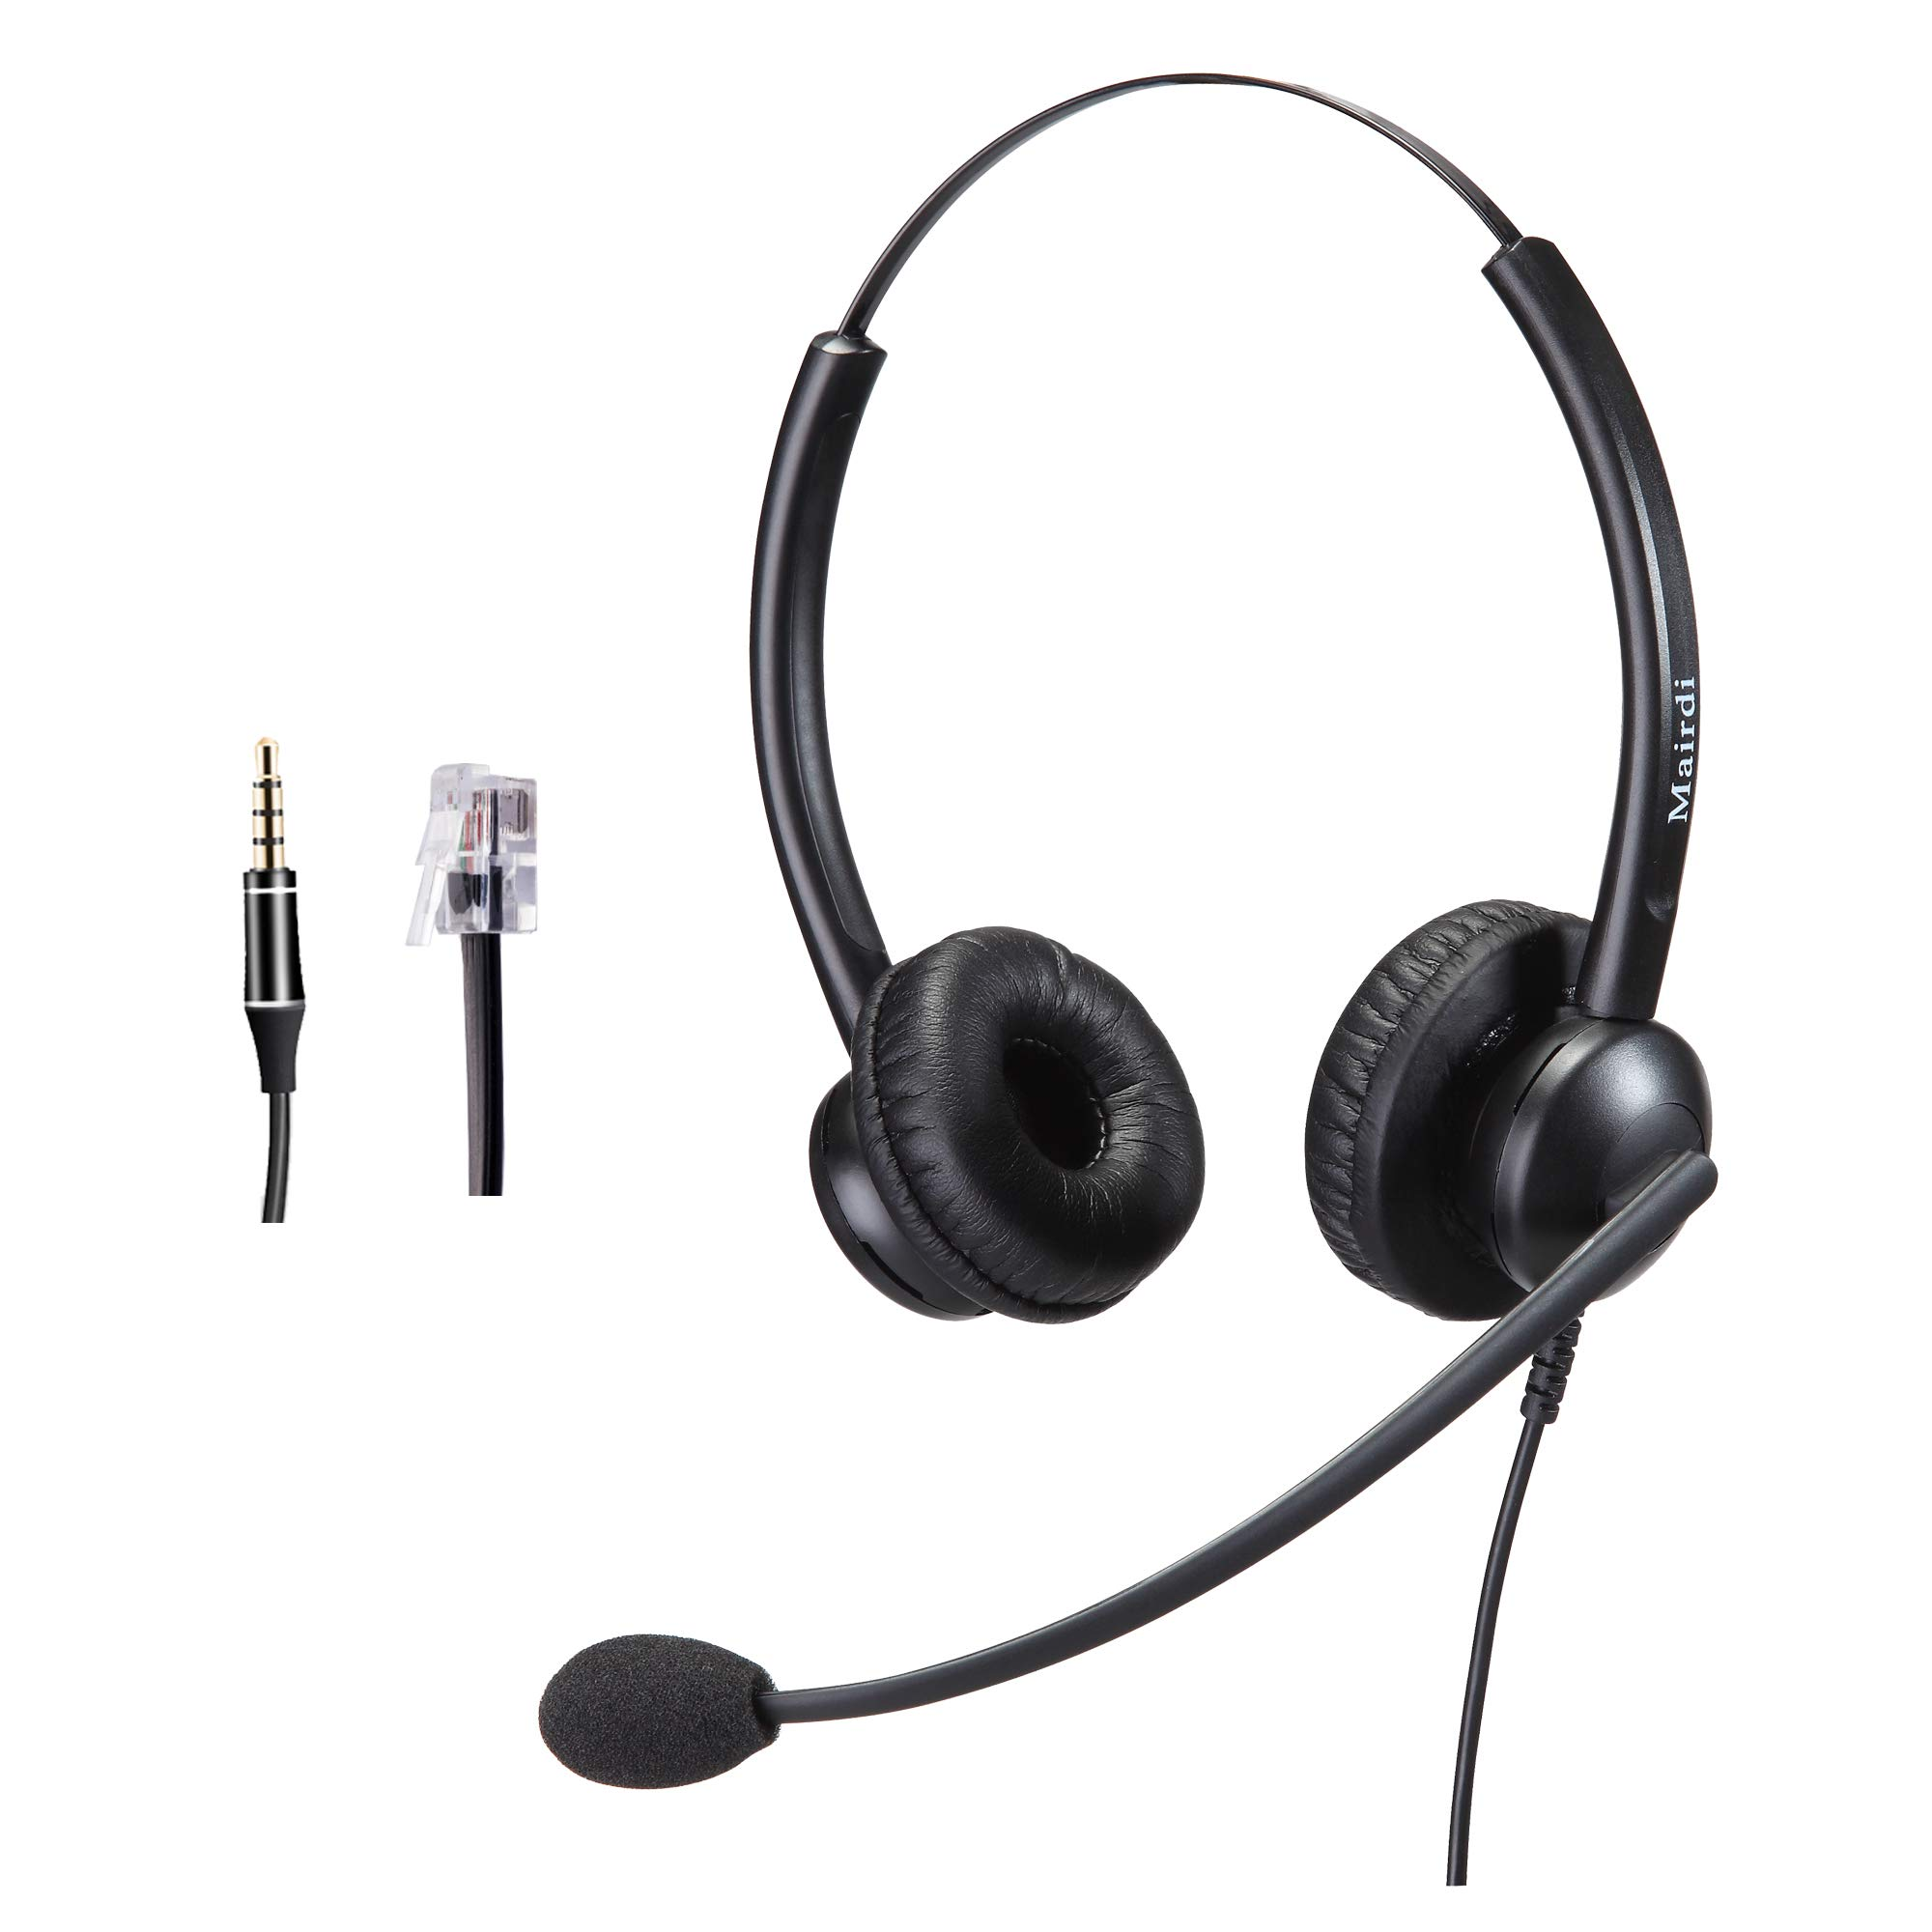 Amazon Com Telephone Headset With Rj9 Jack For Phone Mono With Noise Cancelling Microphone Plus Extra 3 5mm Connector Compatible With Avaya Nortel Polycom Home Audio Theater